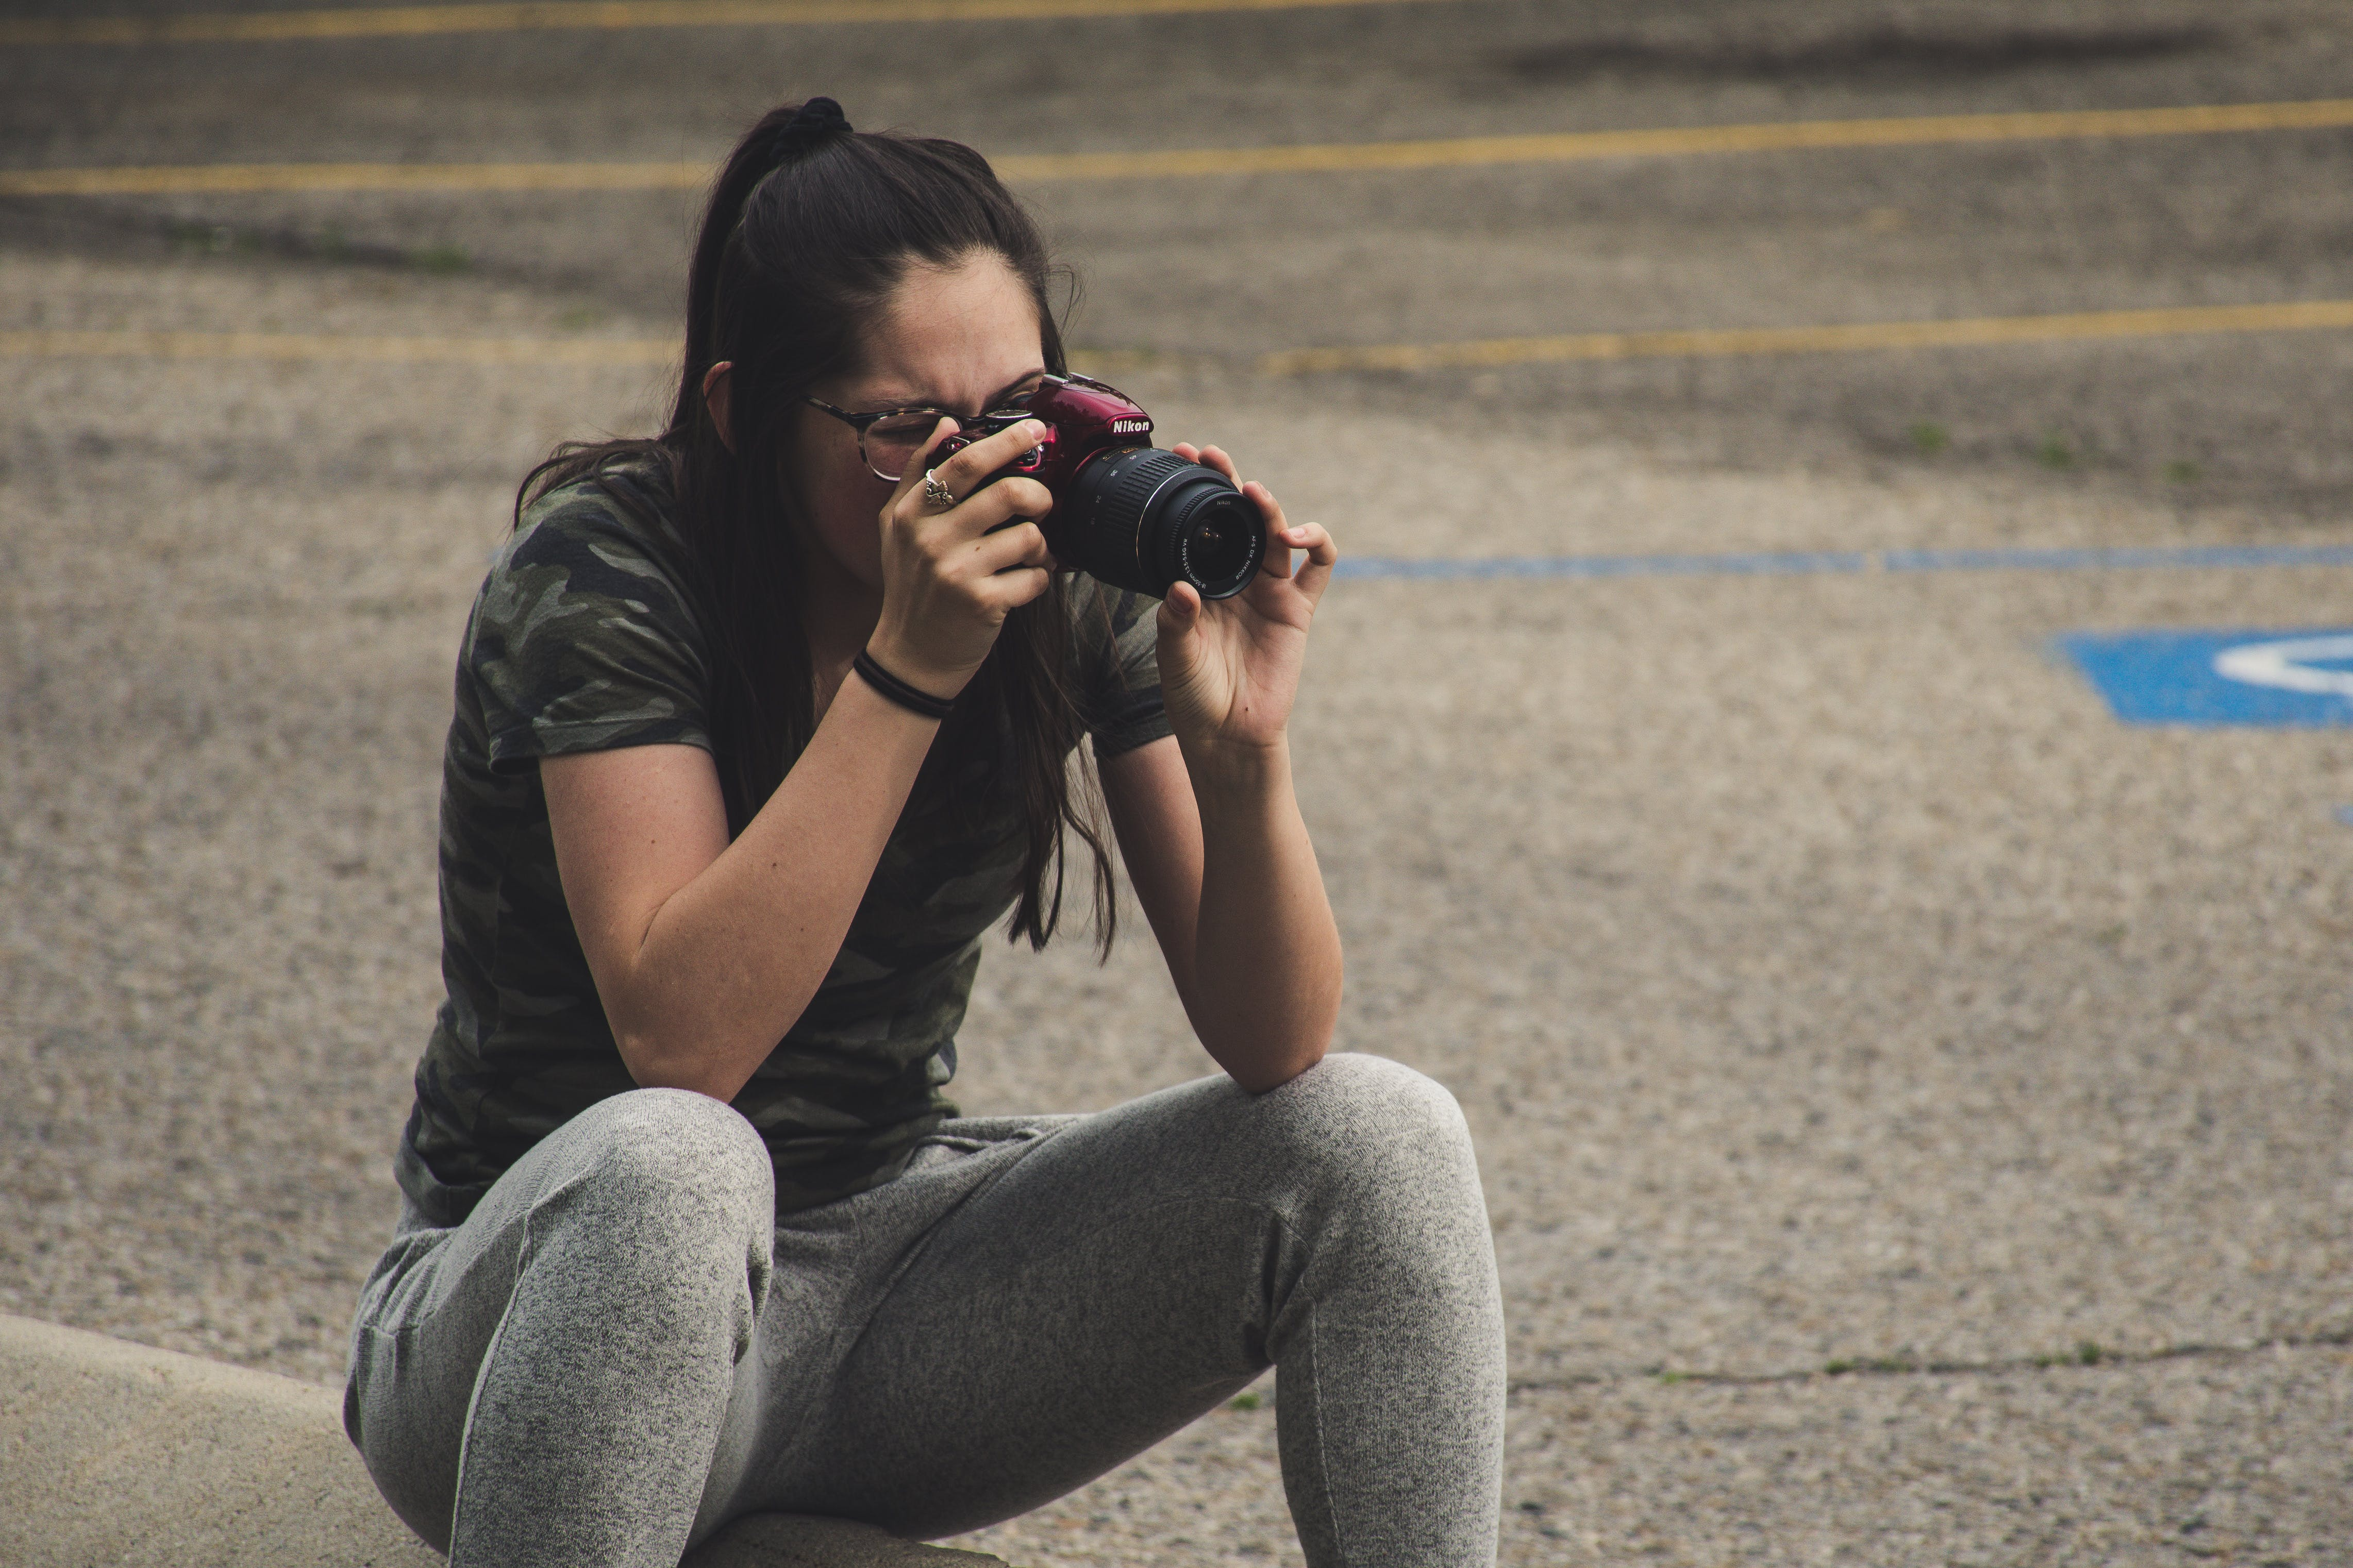 Woman in Gray Pants Sitting While Taking Photo